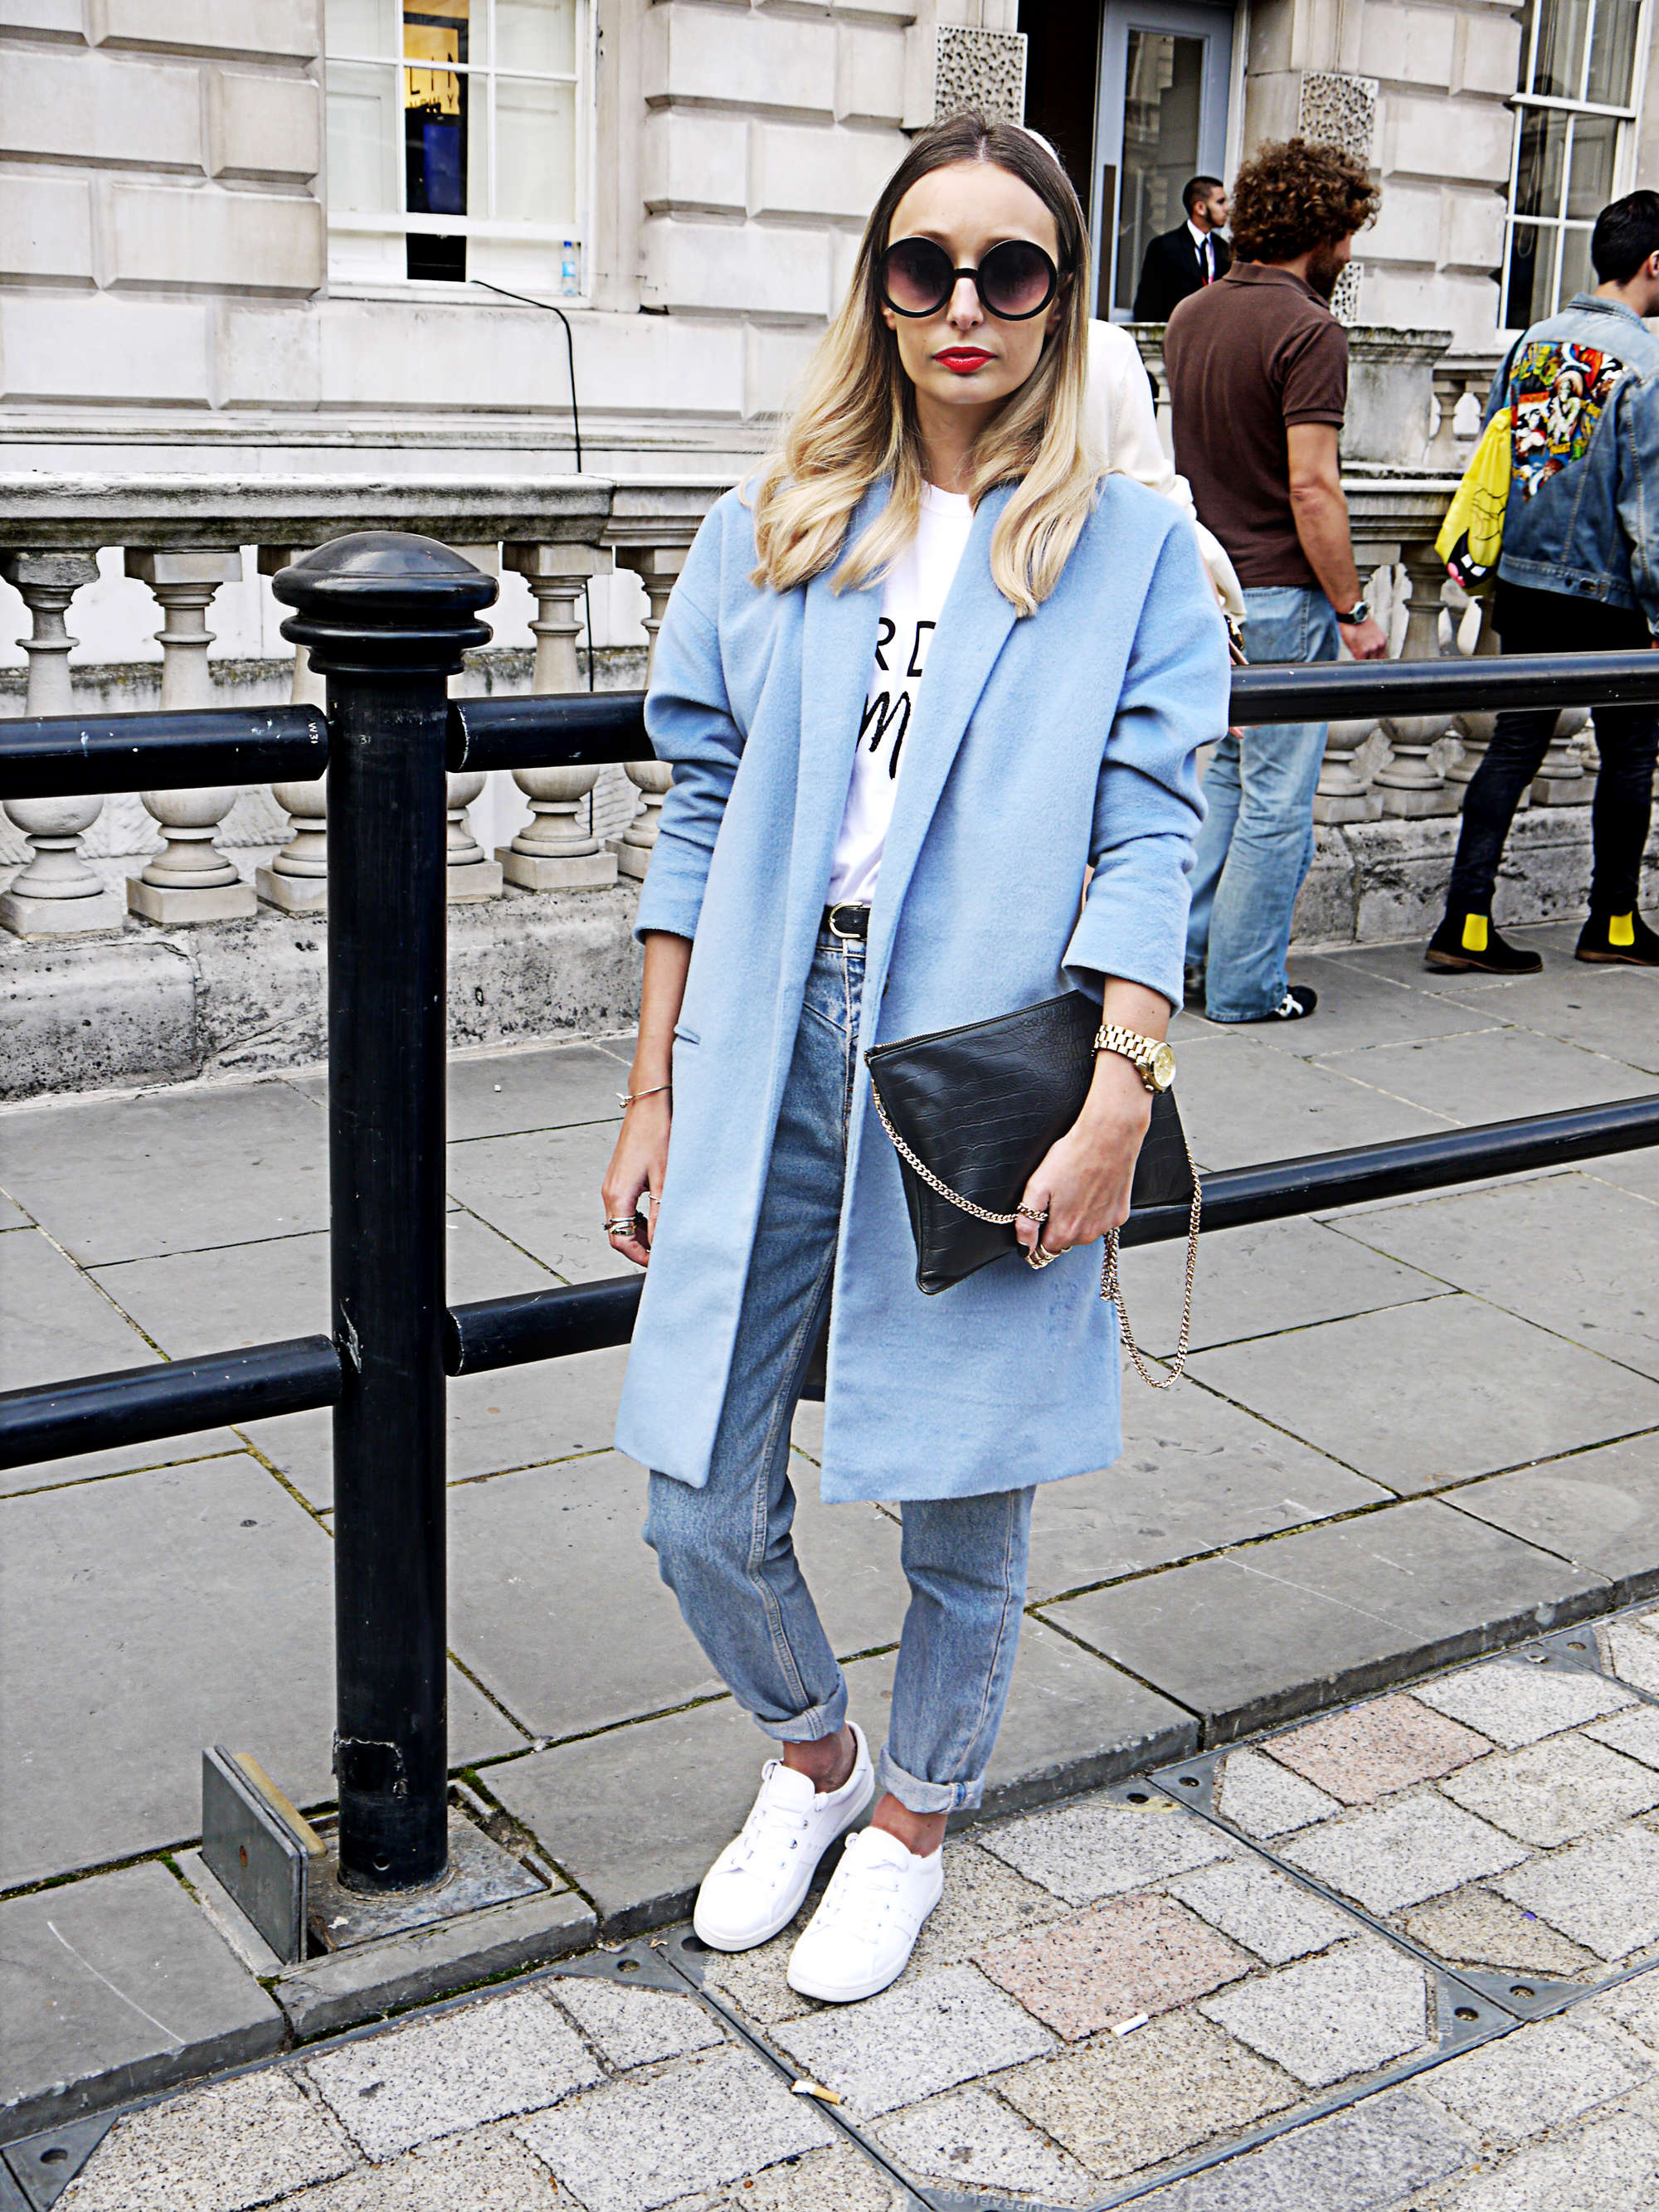 London Fashion Week Ss15 Street Style Day 3 Ldnfashion